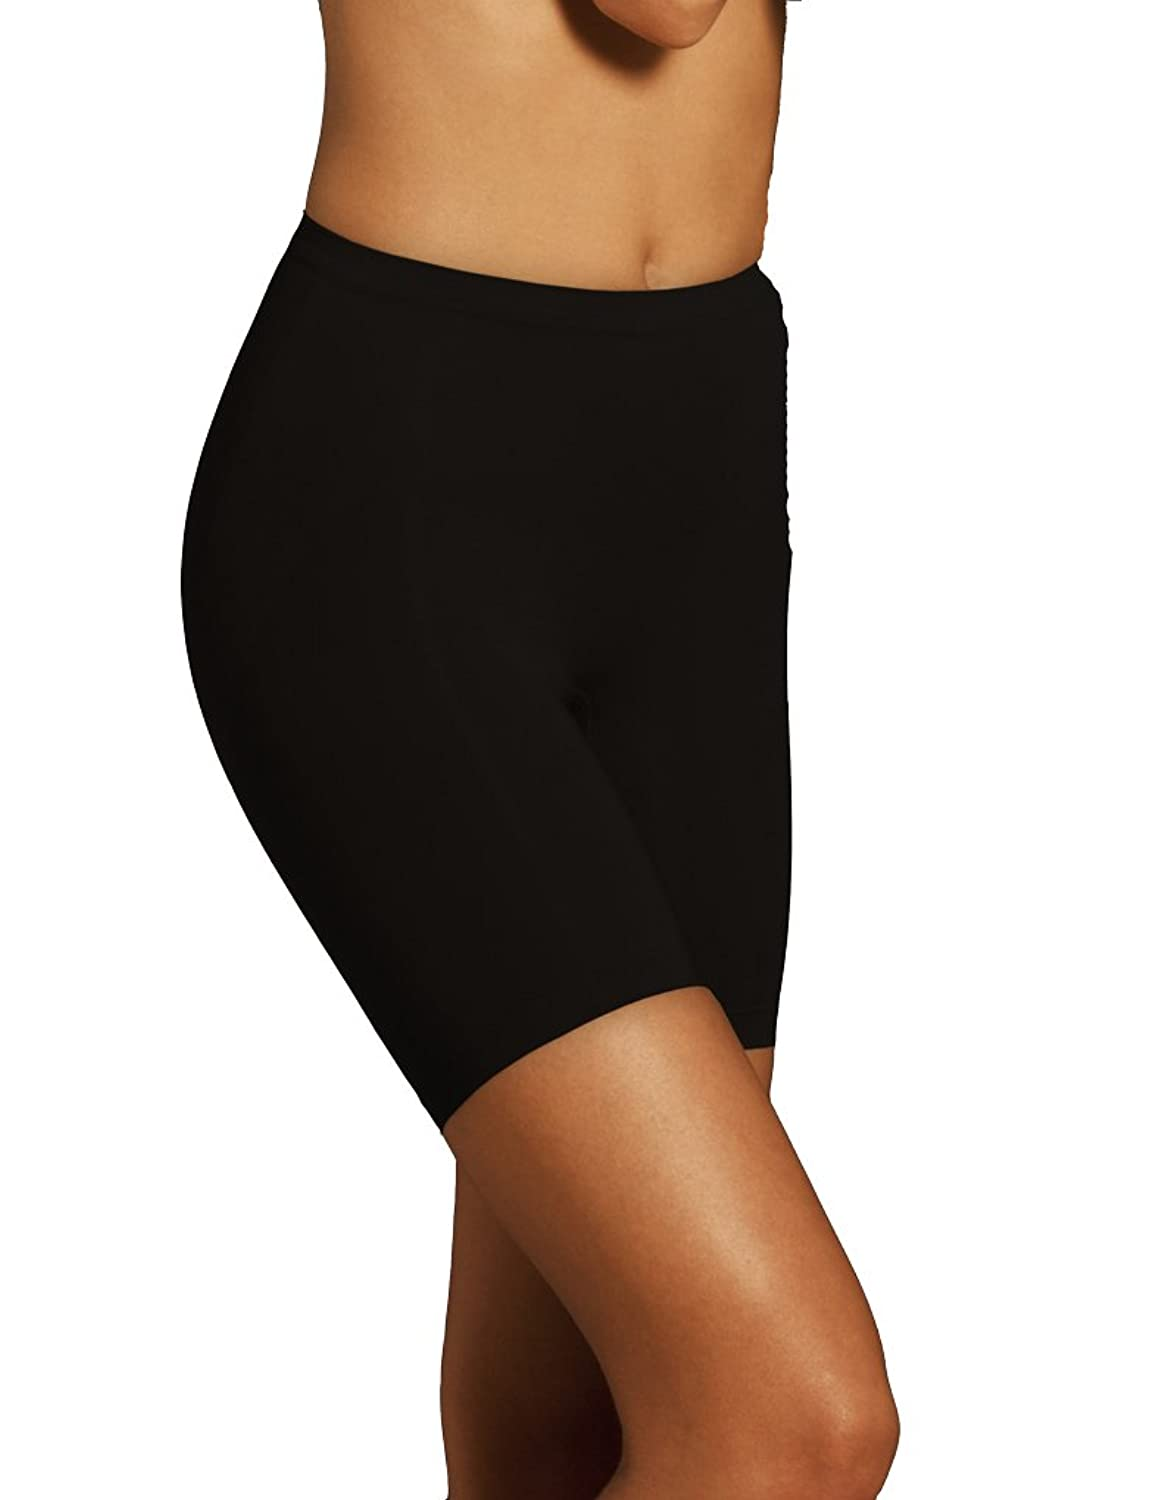 Womens Body Wrap Shapewear Lites Black Waist Line Thigh Slimmer 47820